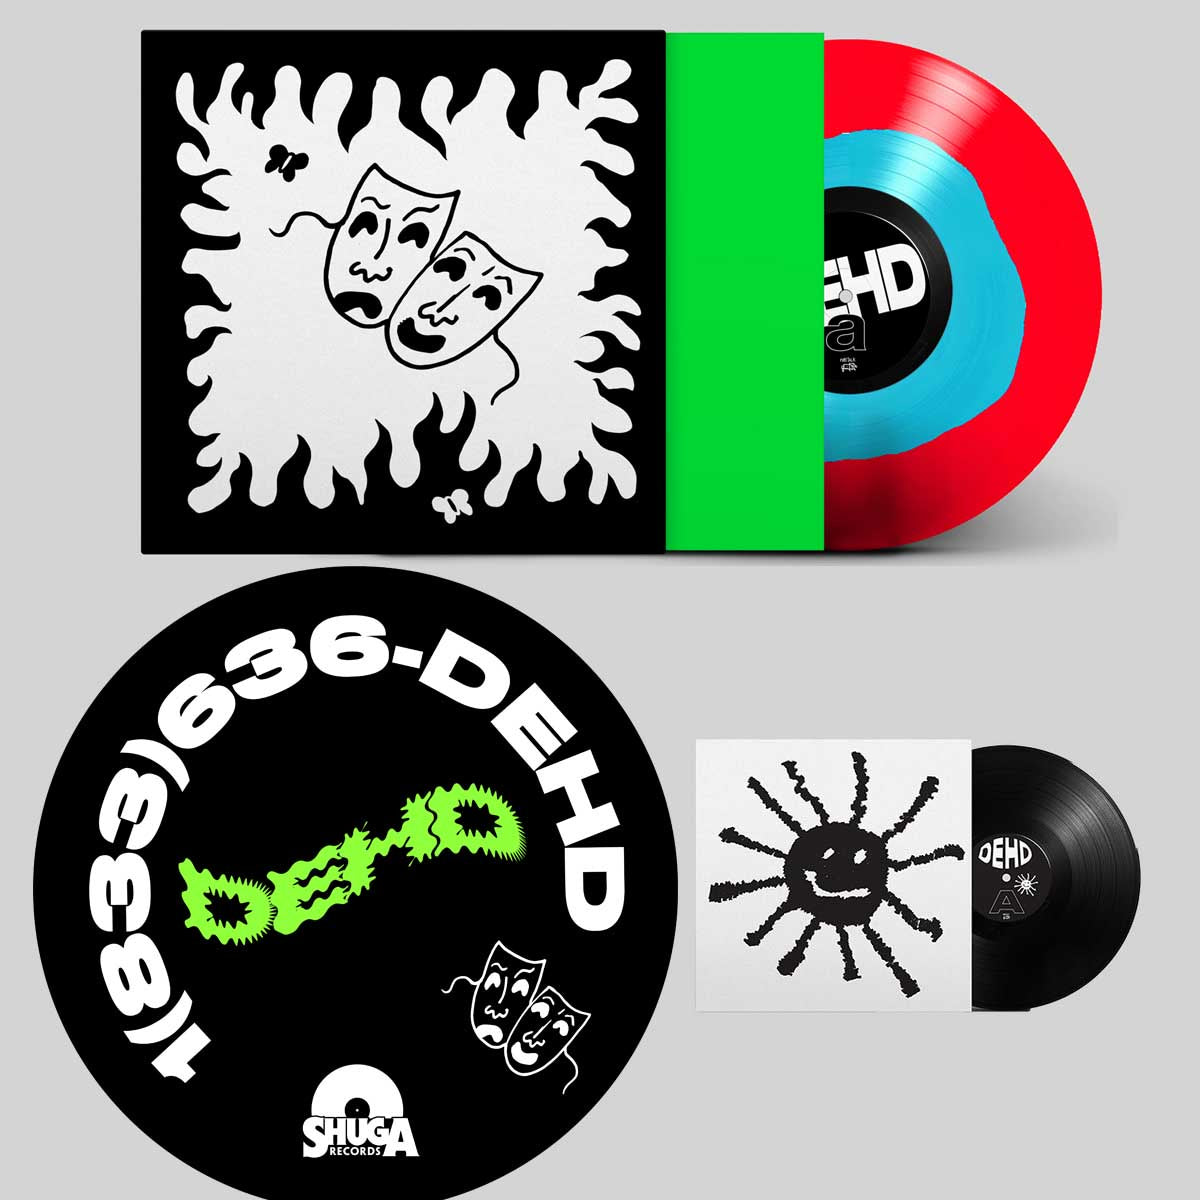 "Dehd - Flower of Devotion - New Lp Record 2020 Fire Talk USA Chicago Exclusive Red & Blue Vinyl, Slipmat & 7"" - Chicago Indie Rock"